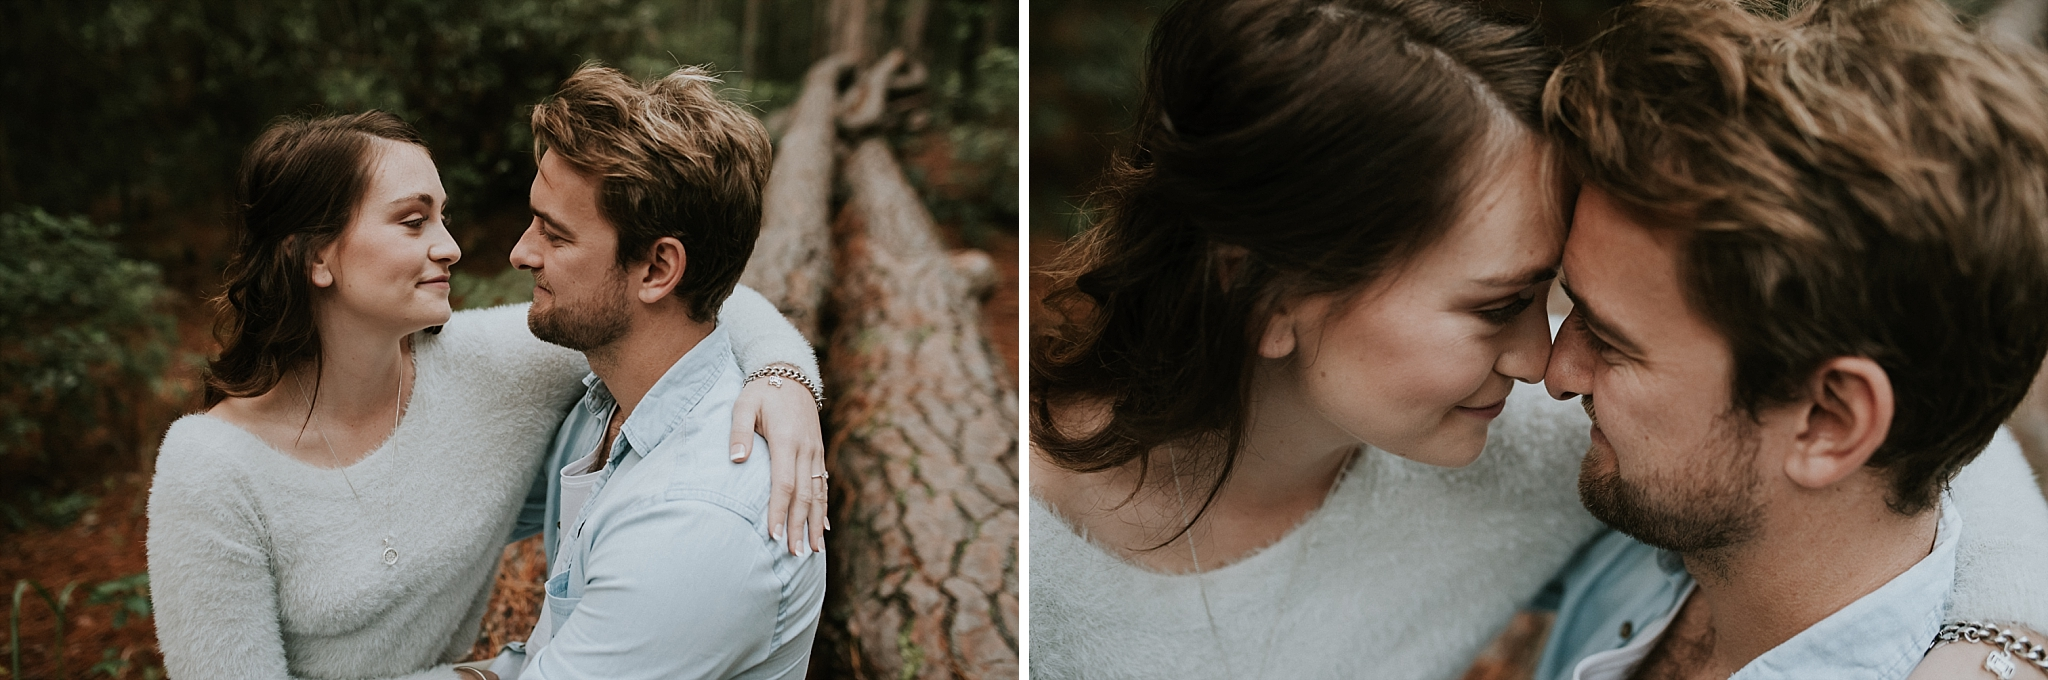 PINES-FOREST-PARK-ENGAGEMENT-MAT-AMY-15_BLOG.jpg